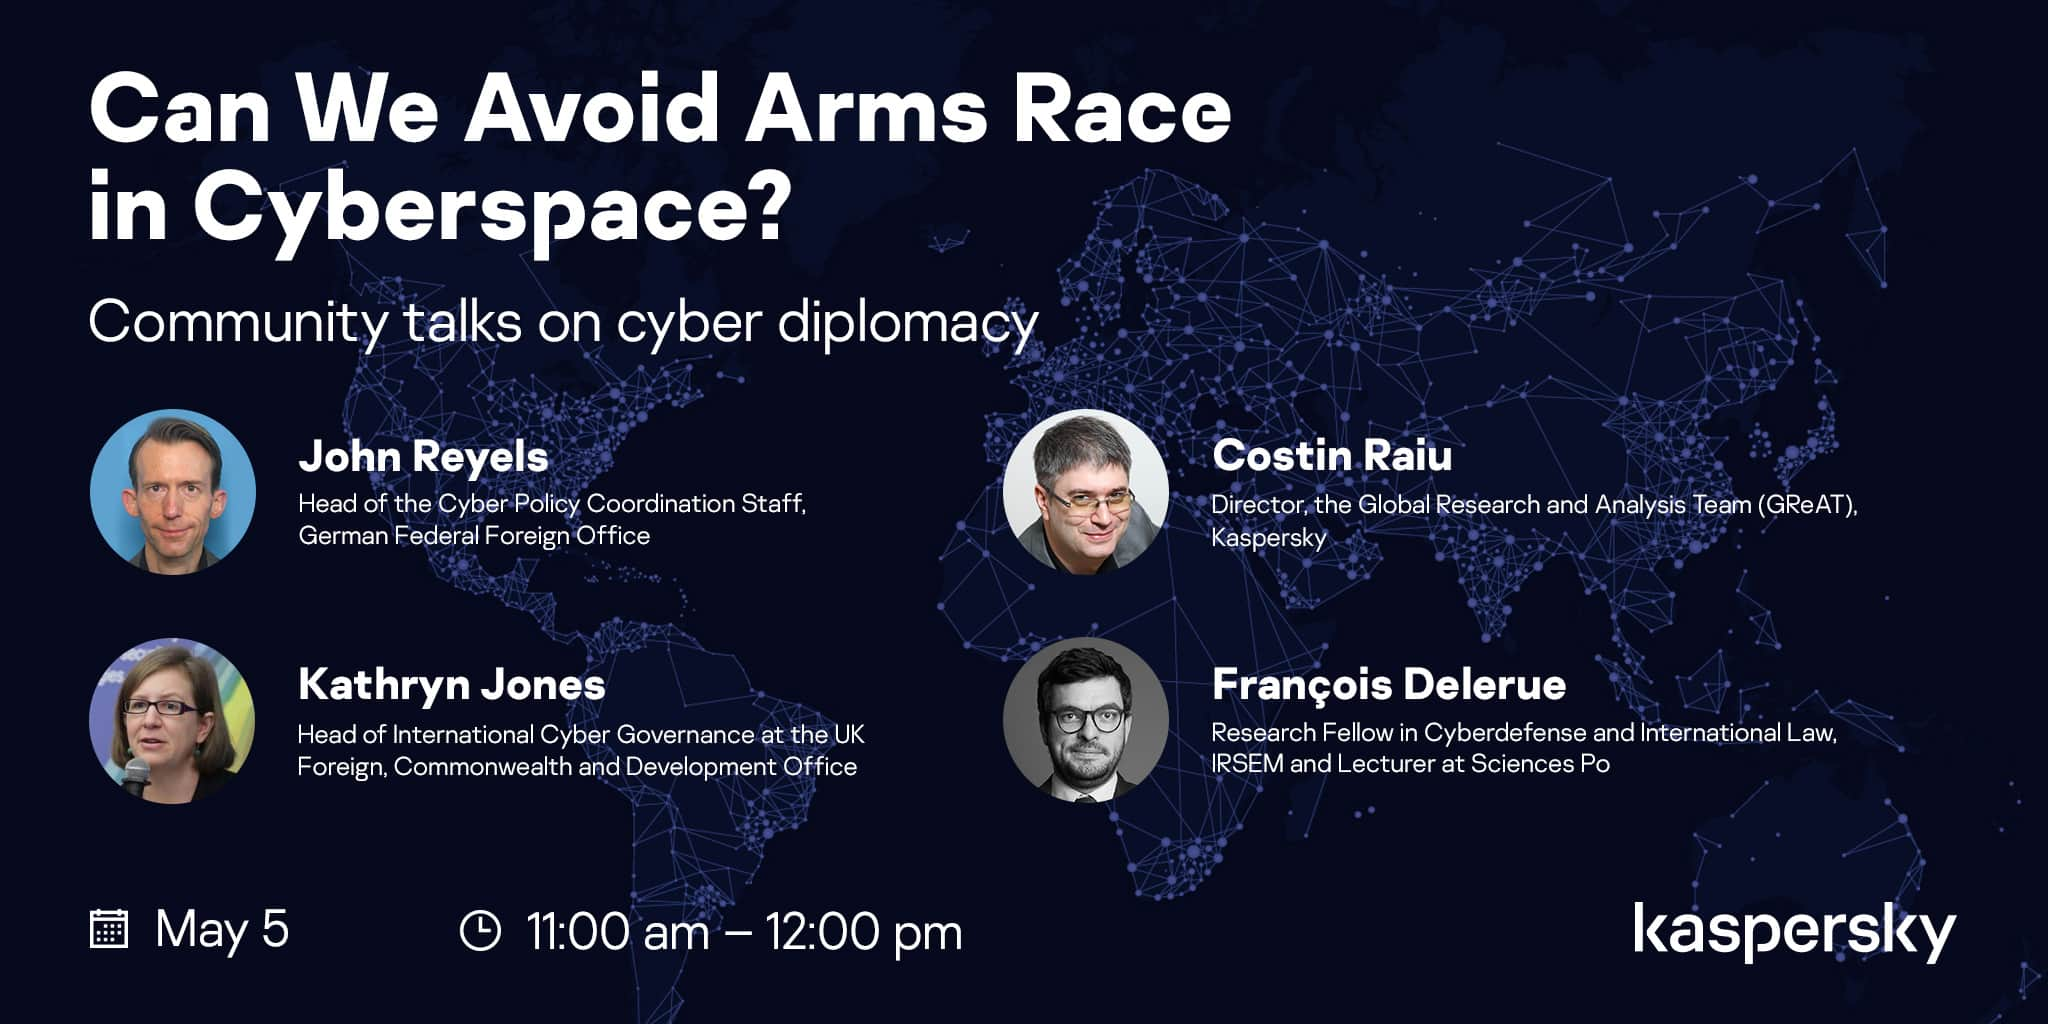 content/en-global/images/repository/resources/community-talks-on-cyber-diplomacy-5.jpg